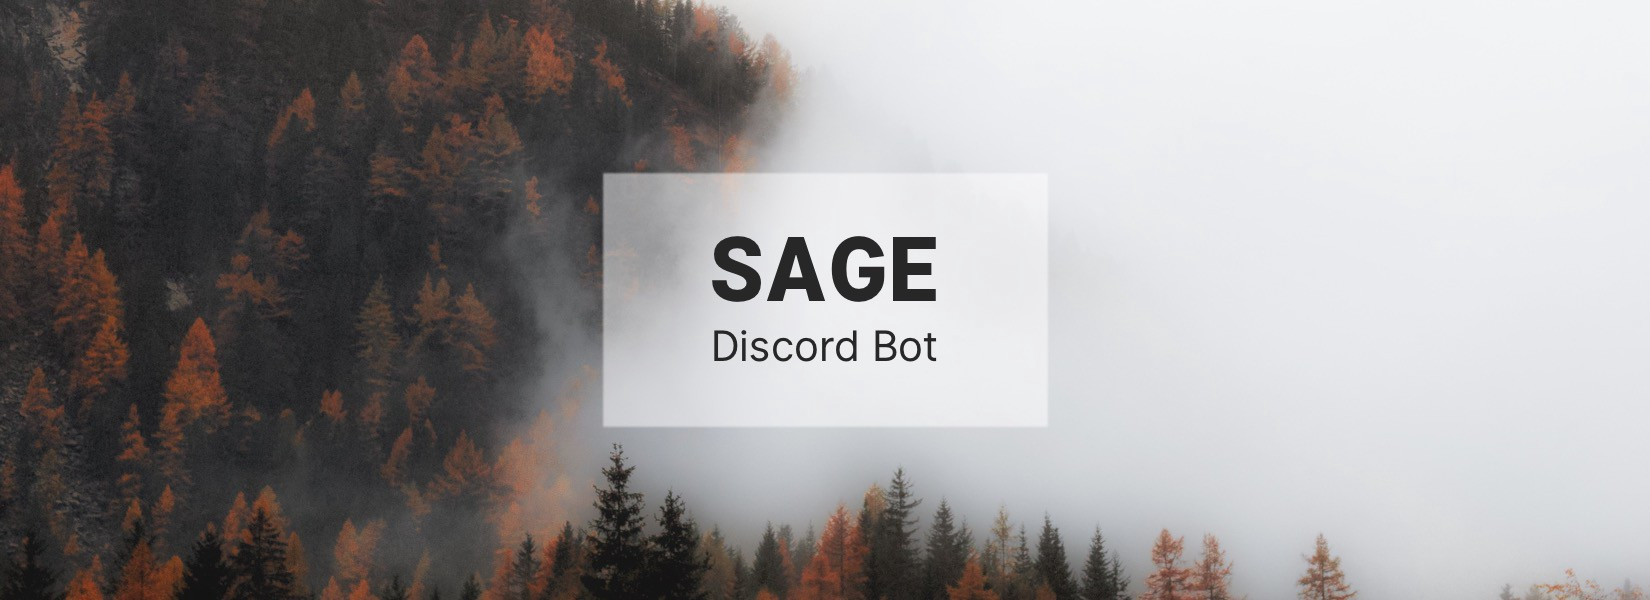 Announcing SAGE for Discord - Sudo vs Root